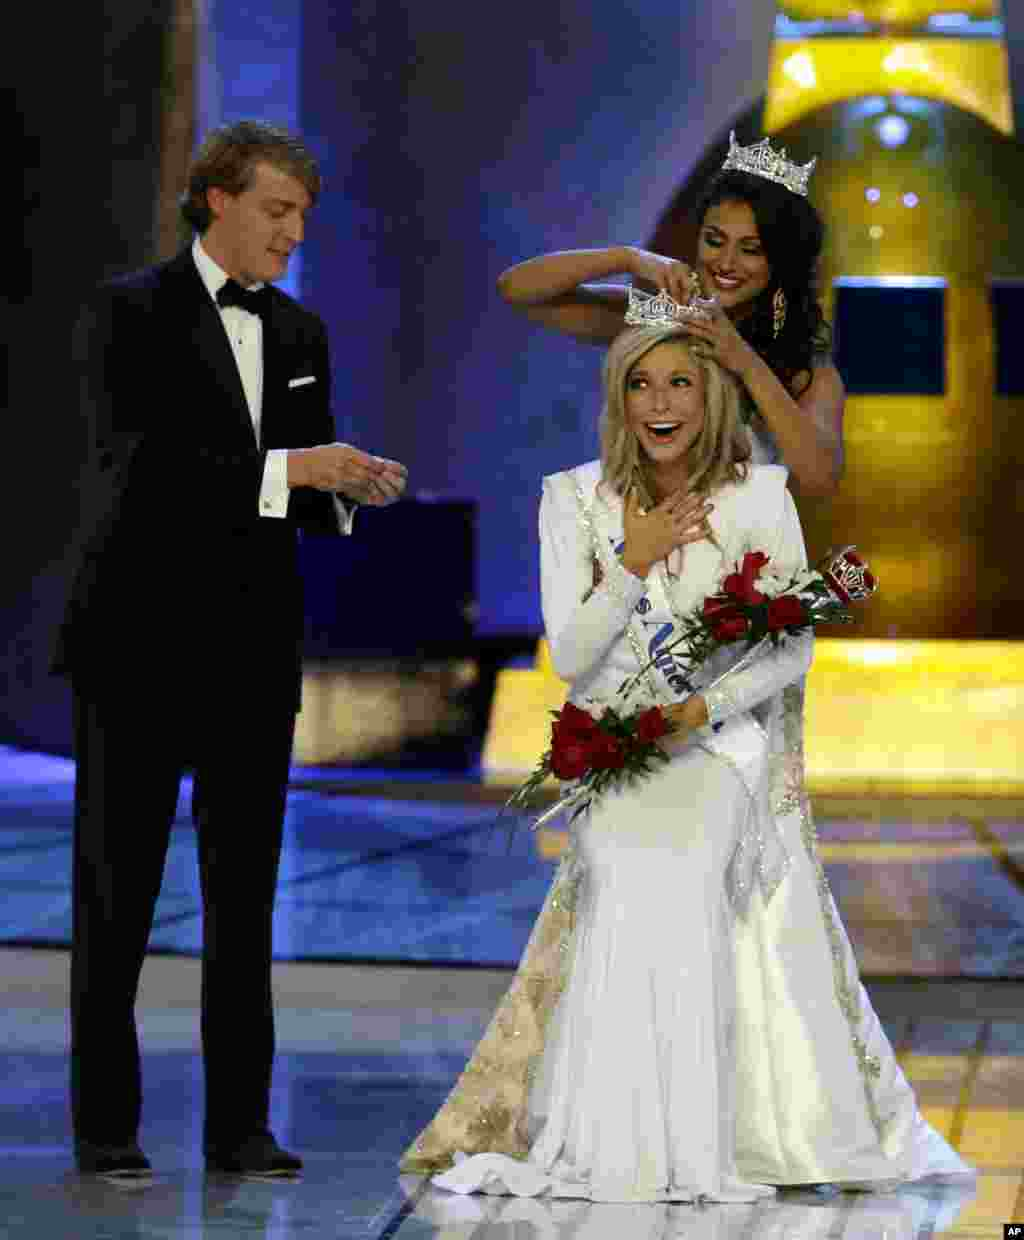 Miss America 2014 Nina Davuluri, top right, crowns Miss New York Kira Kazantsev as Miss America 2015 during the Miss America 2015 pagean in Atlantic City, New Jersey, Sept. 14, 2014.